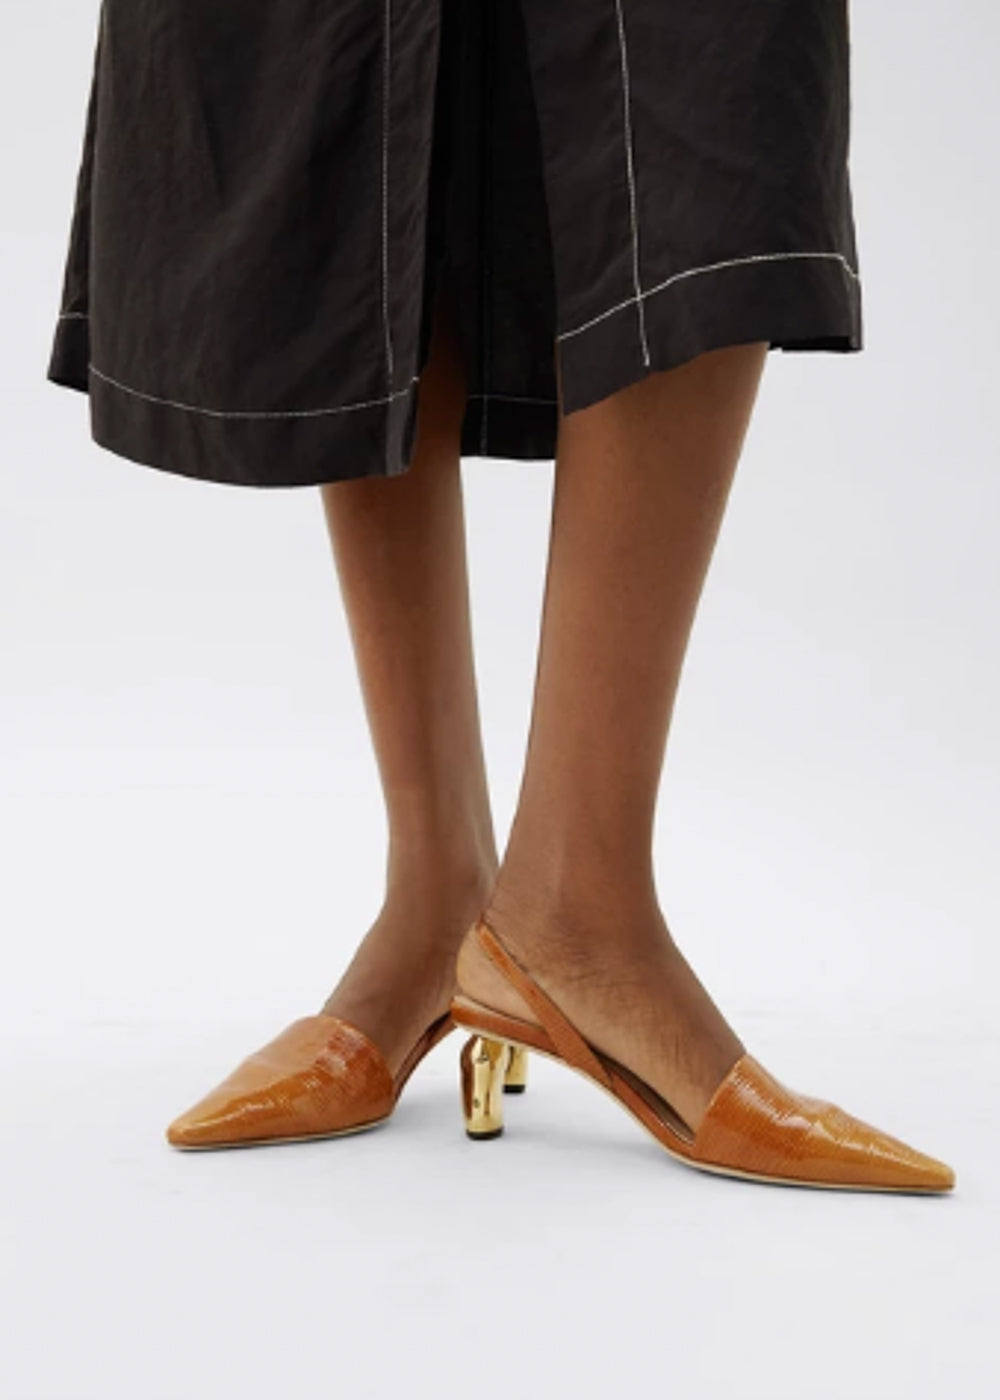 Conie Slingback Shoes - patent leather emboss almond